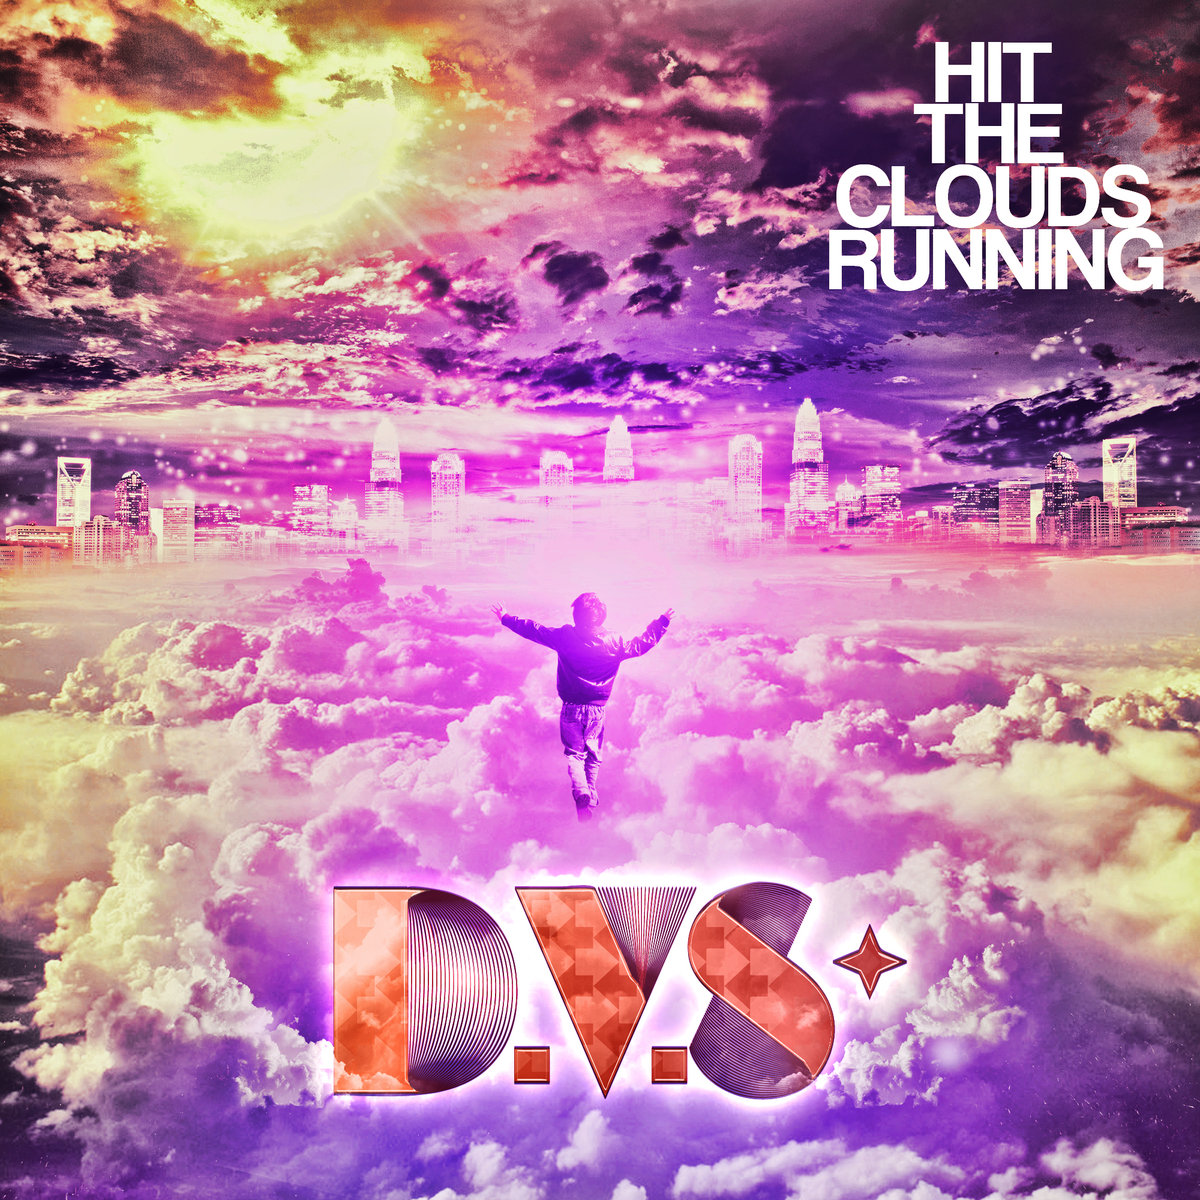 D.V.S* feat. Cherub & Govinda - Sleepwalker @ 'Hit The Clouds Running' album (electronica, guitar)